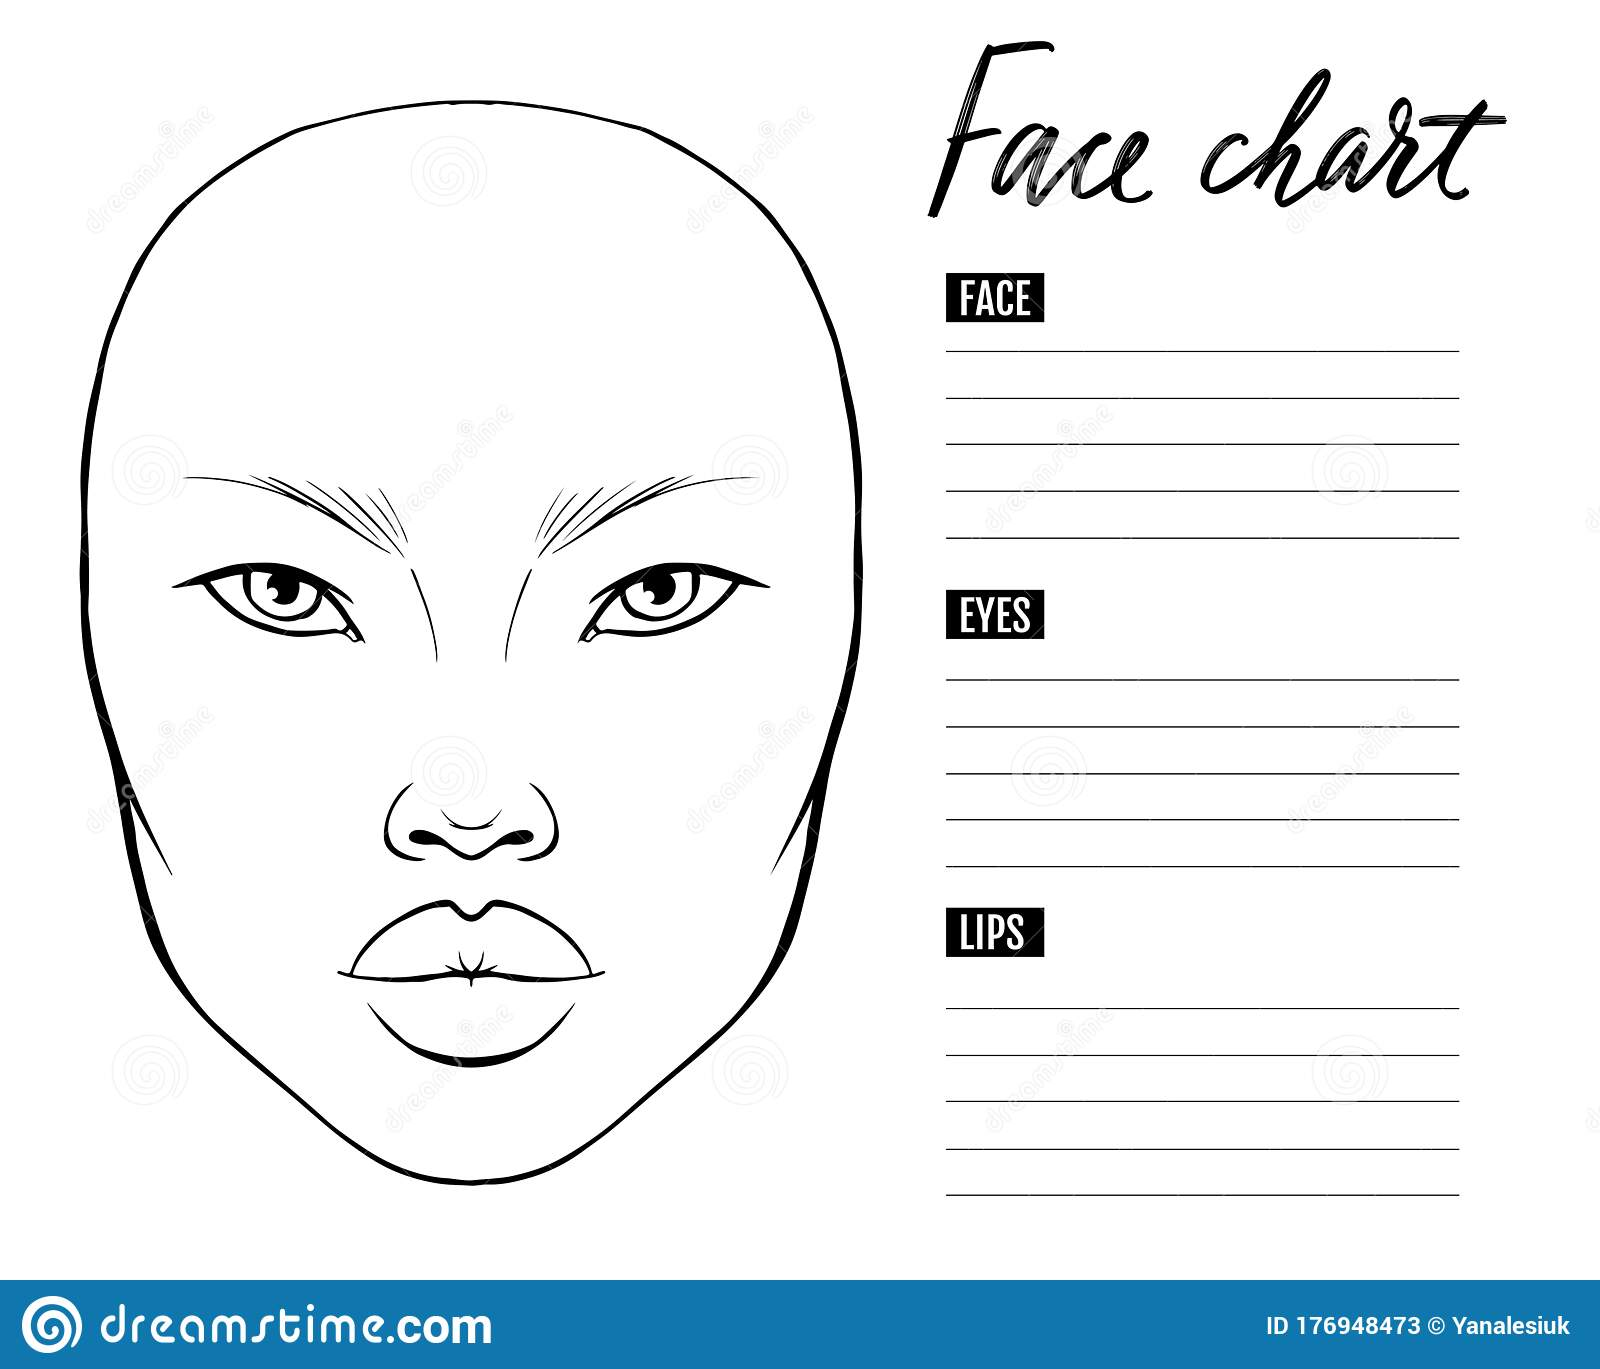 Face Chart Makeup Asian Stock Illustrations 90 Face Chart Makeup Asian Stock Illustrations Vectors Clipart Dreamstime